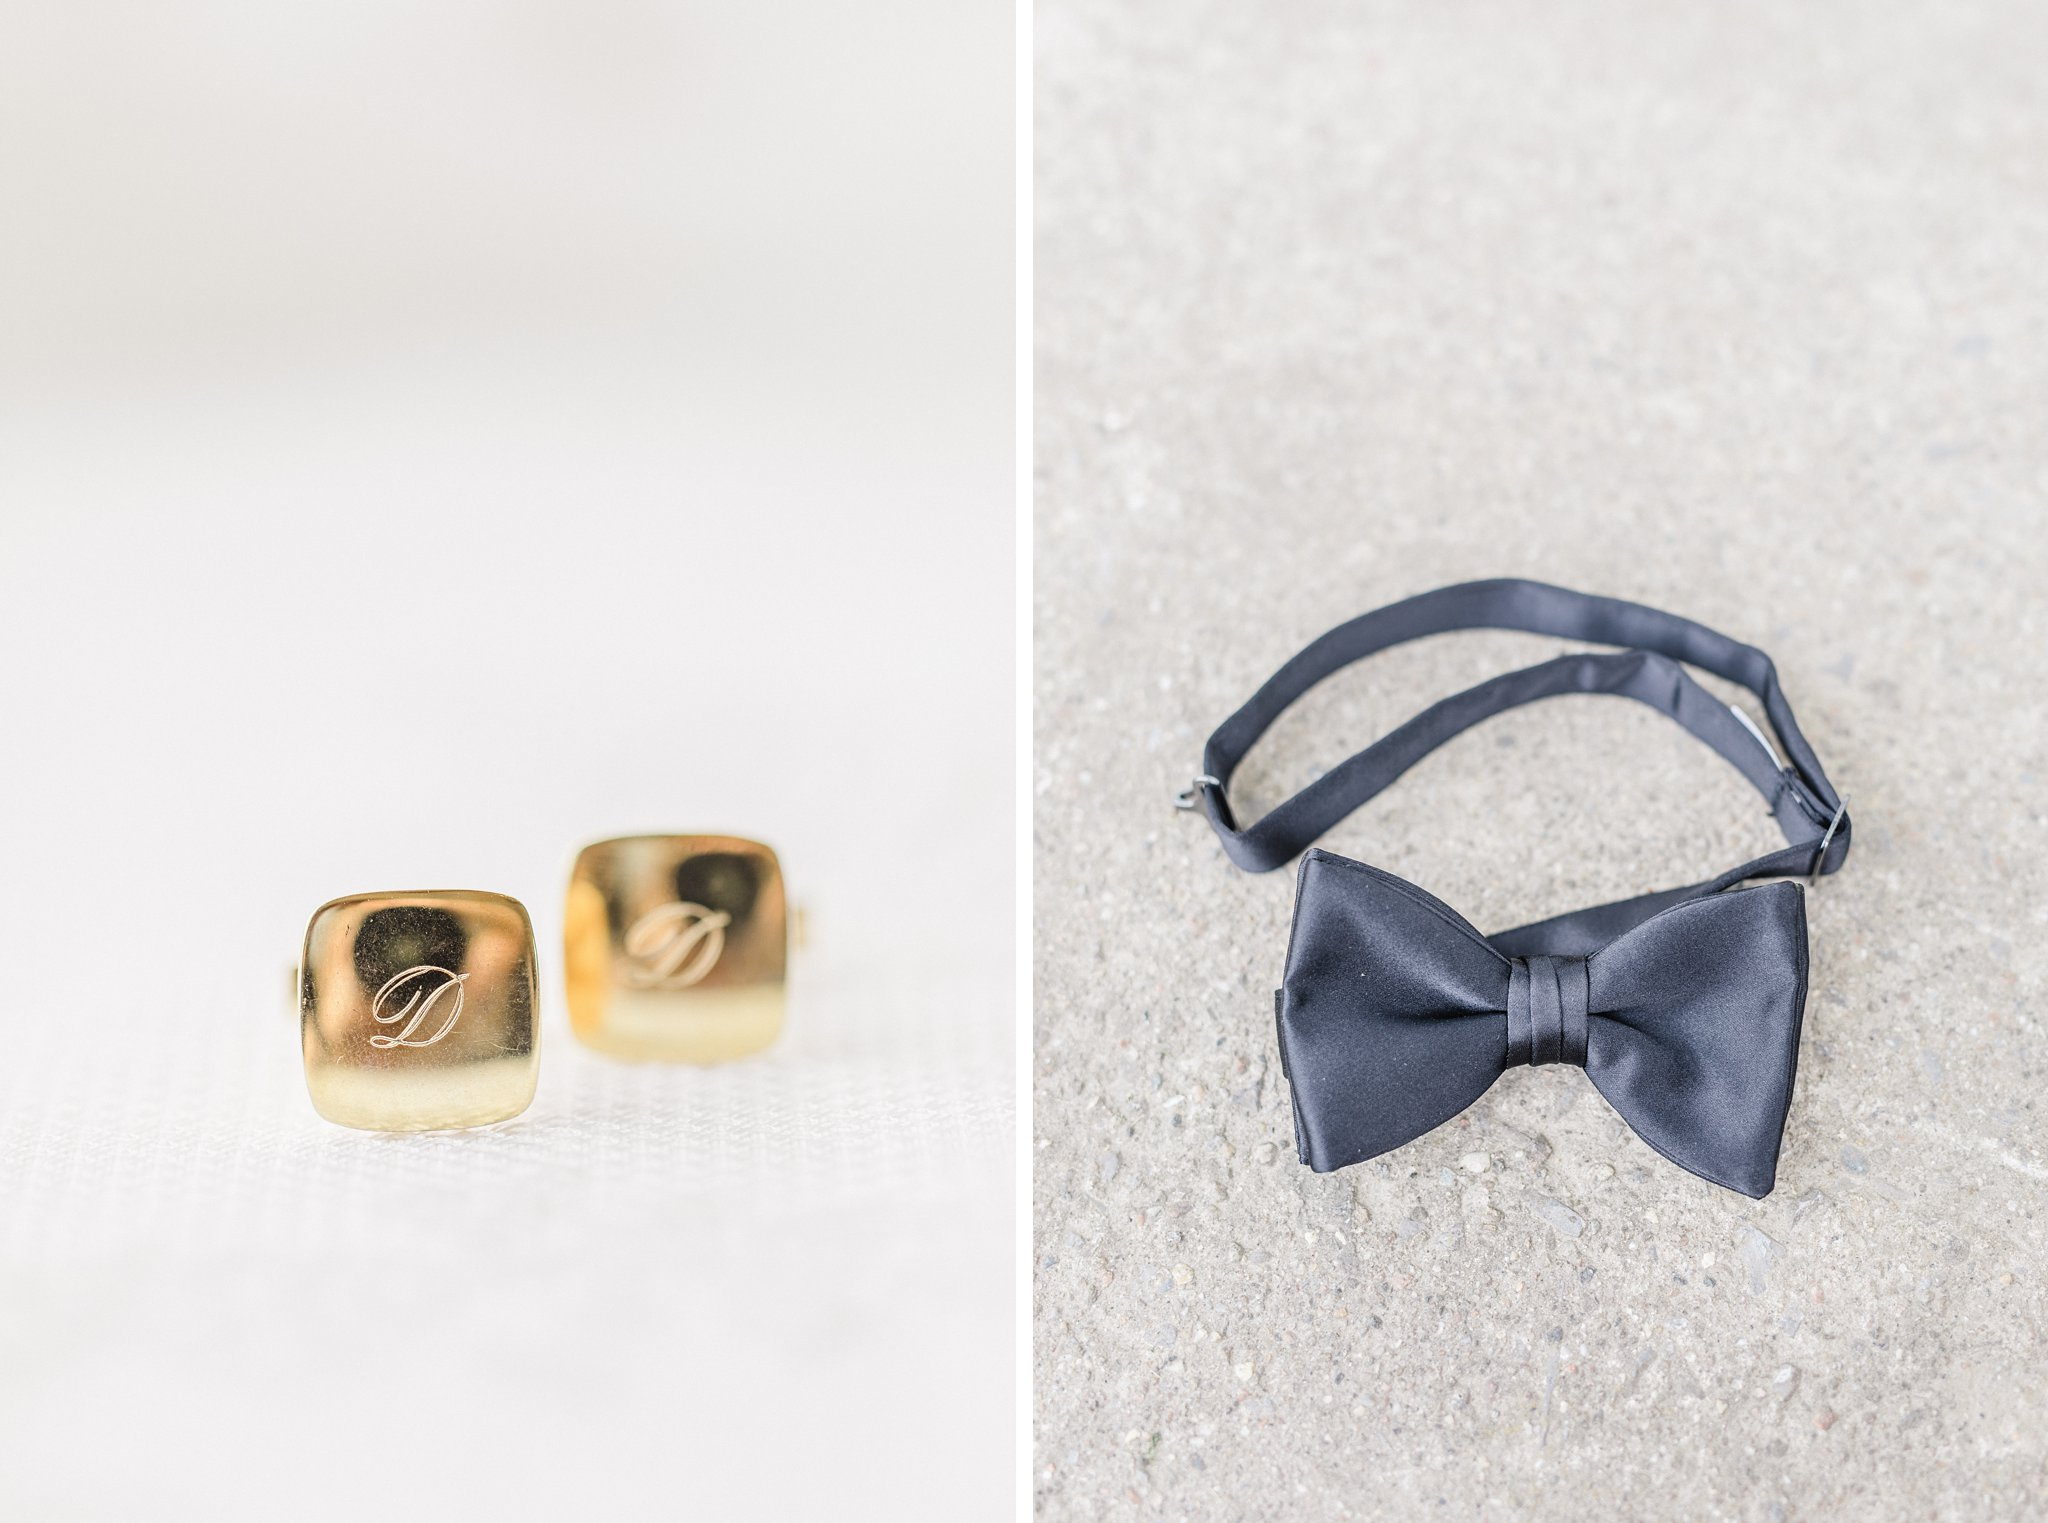 Vintage cufflinks classic black bowtie married at Stonefields, Amy Pinder Photography